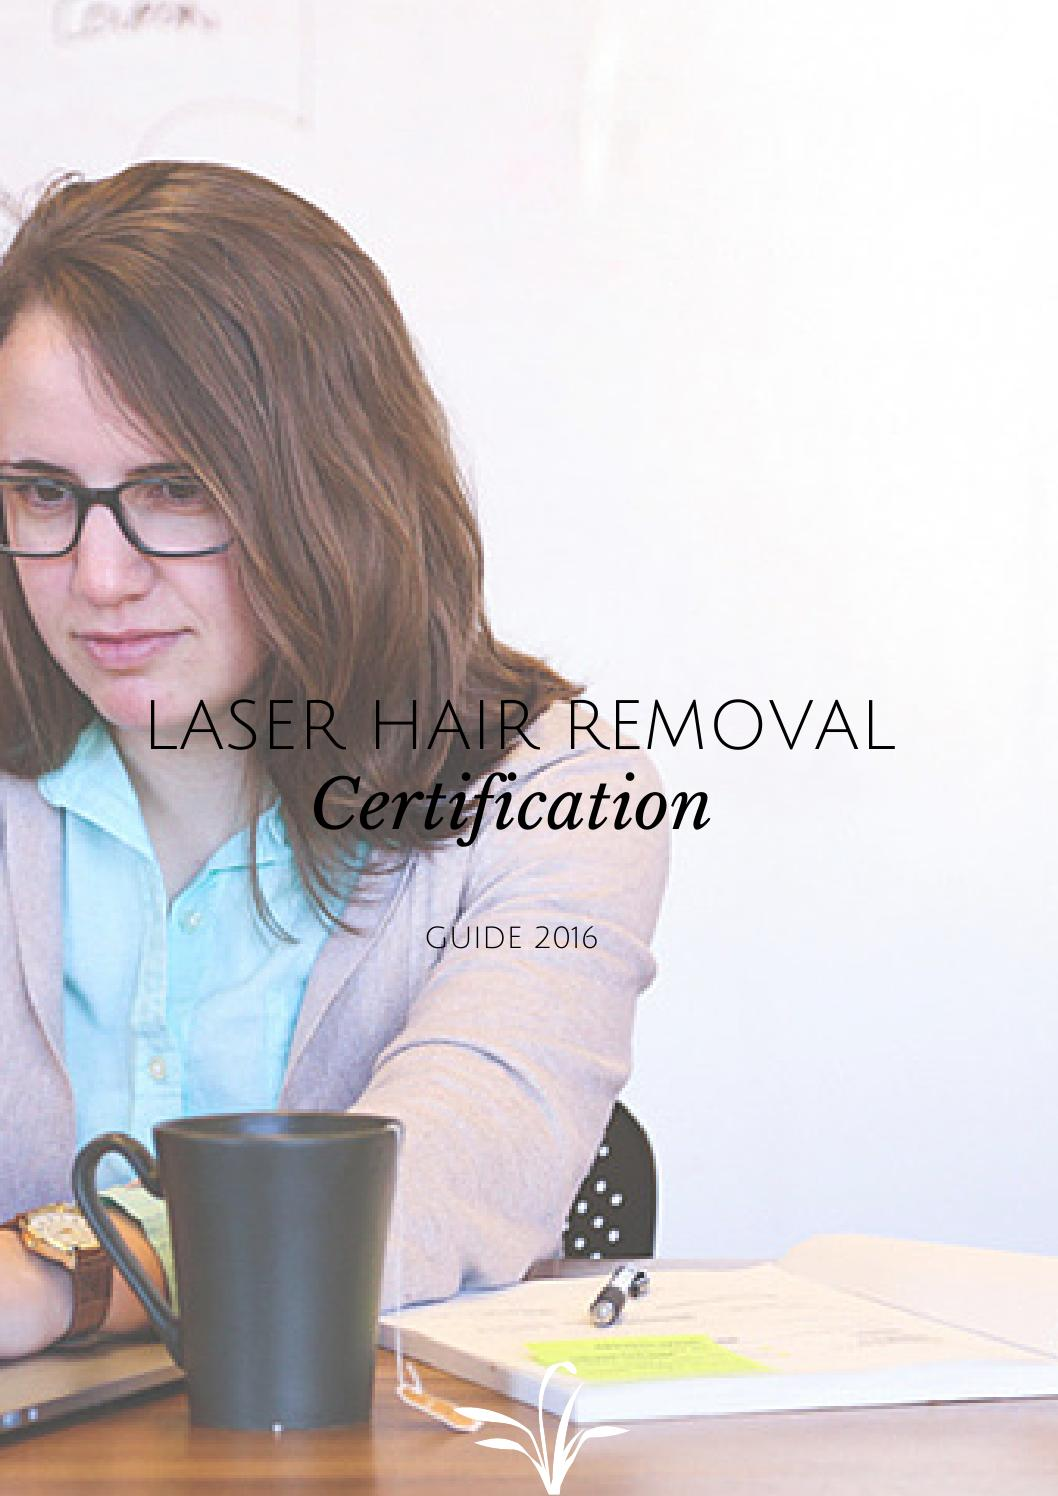 Laser hair removal certification by best hair removal ultimate issuu xflitez Choice Image